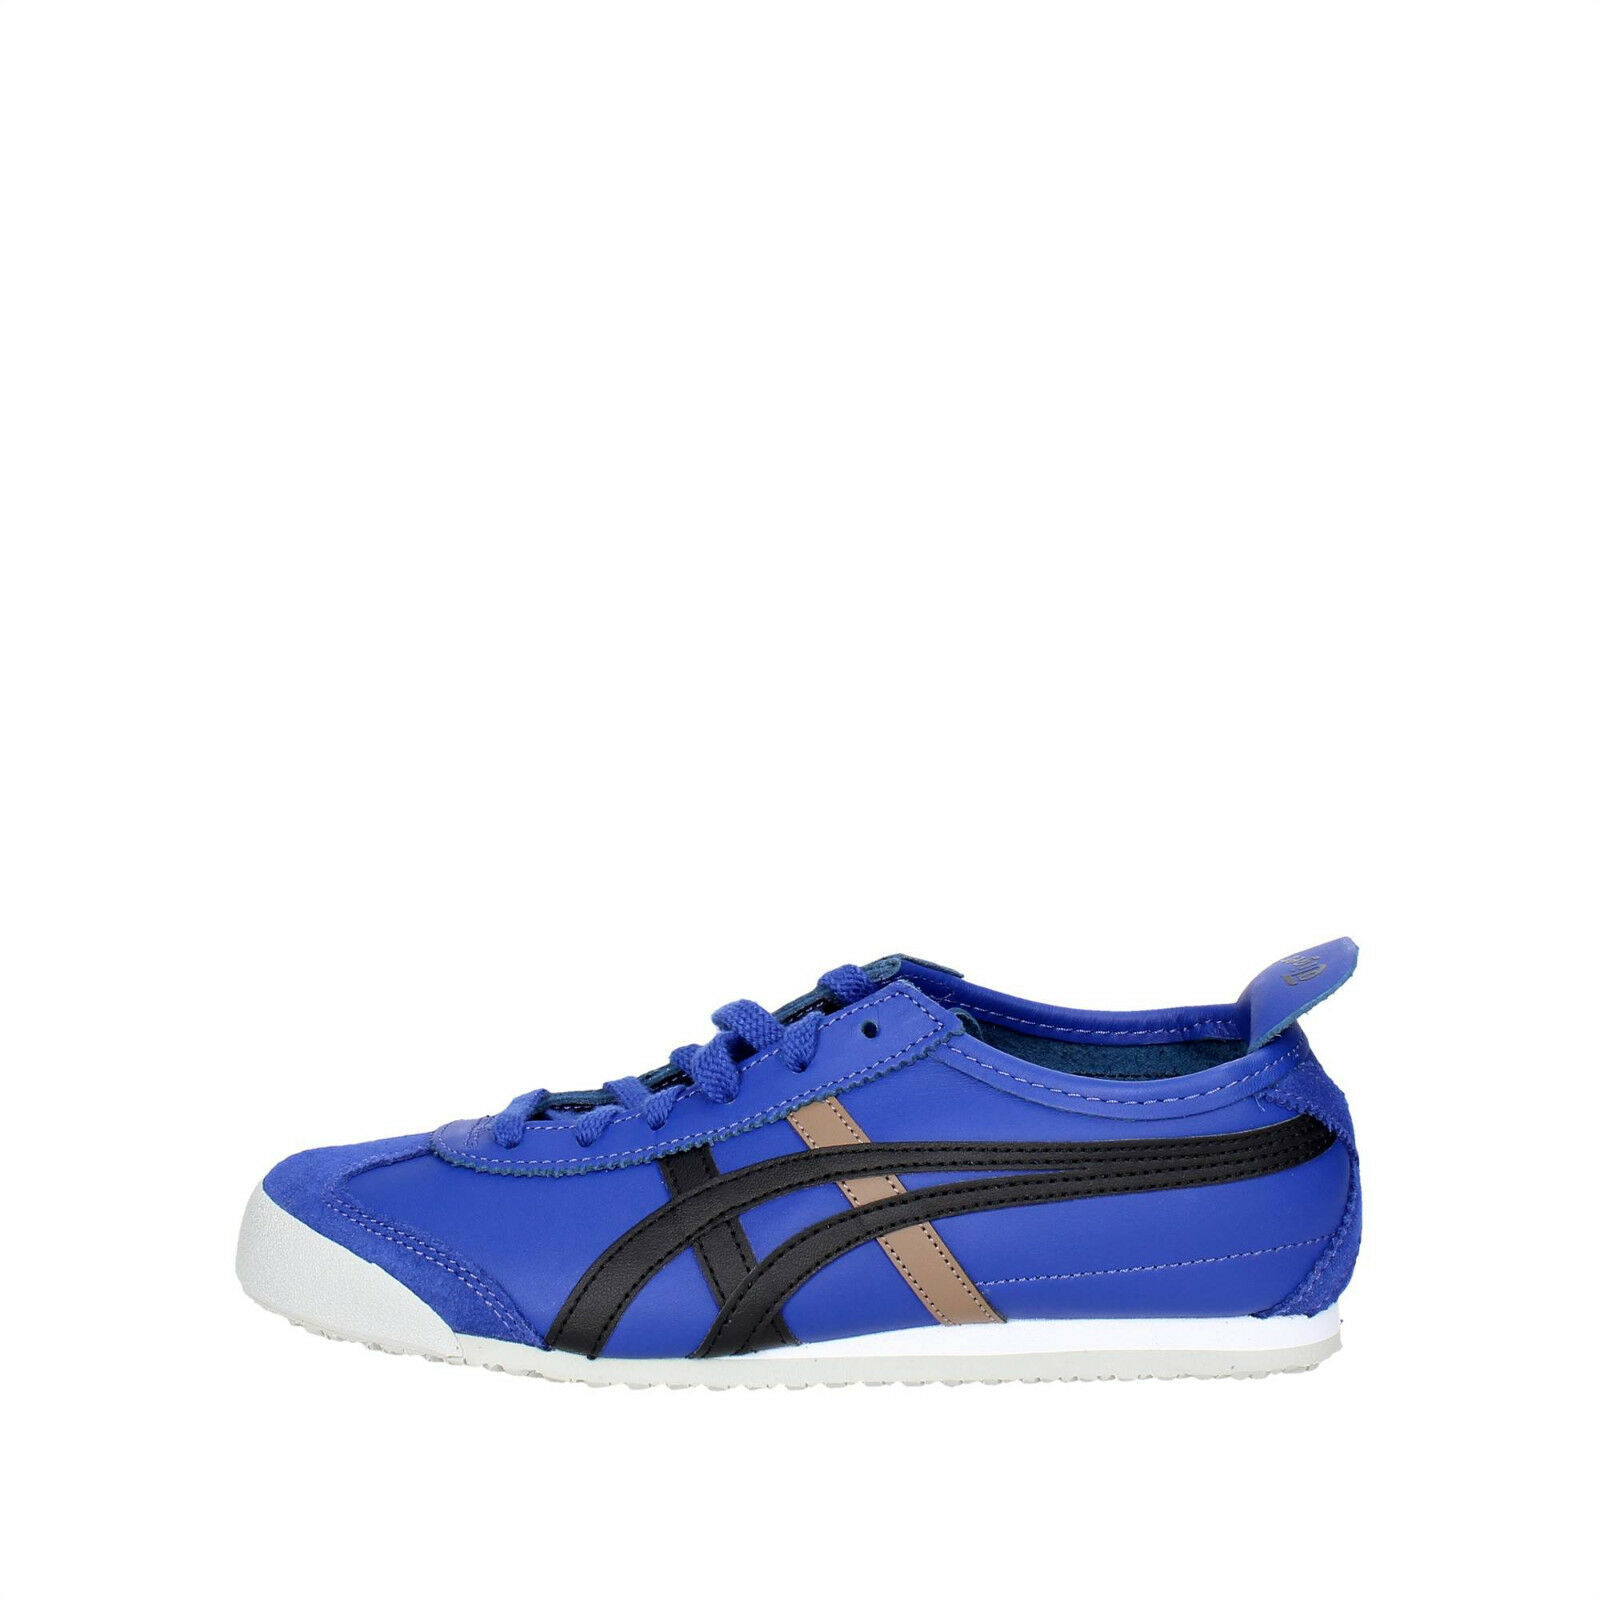 Onitsuka Tiger Mexico 66 Unisex Trainers - Adults and Junior Größes - 6 Colours